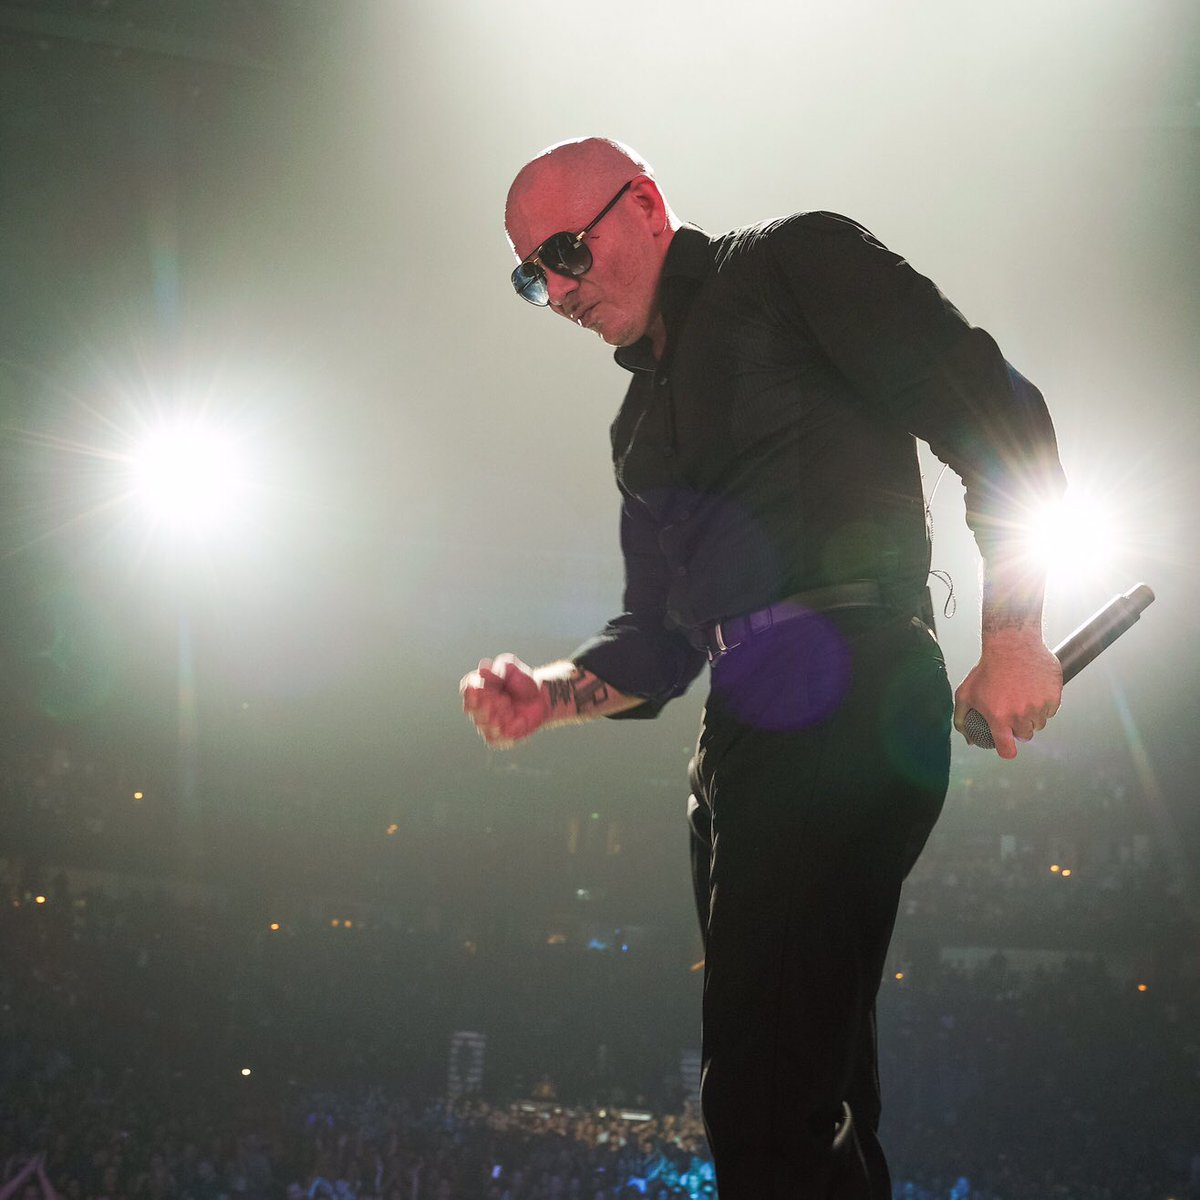 A night to remember!  San Diego tonight @SleepTrainAmpSD @livenation with @PrinceRoyce @farrukopr #Dale https://t.co/ZPwGOiP6Ny